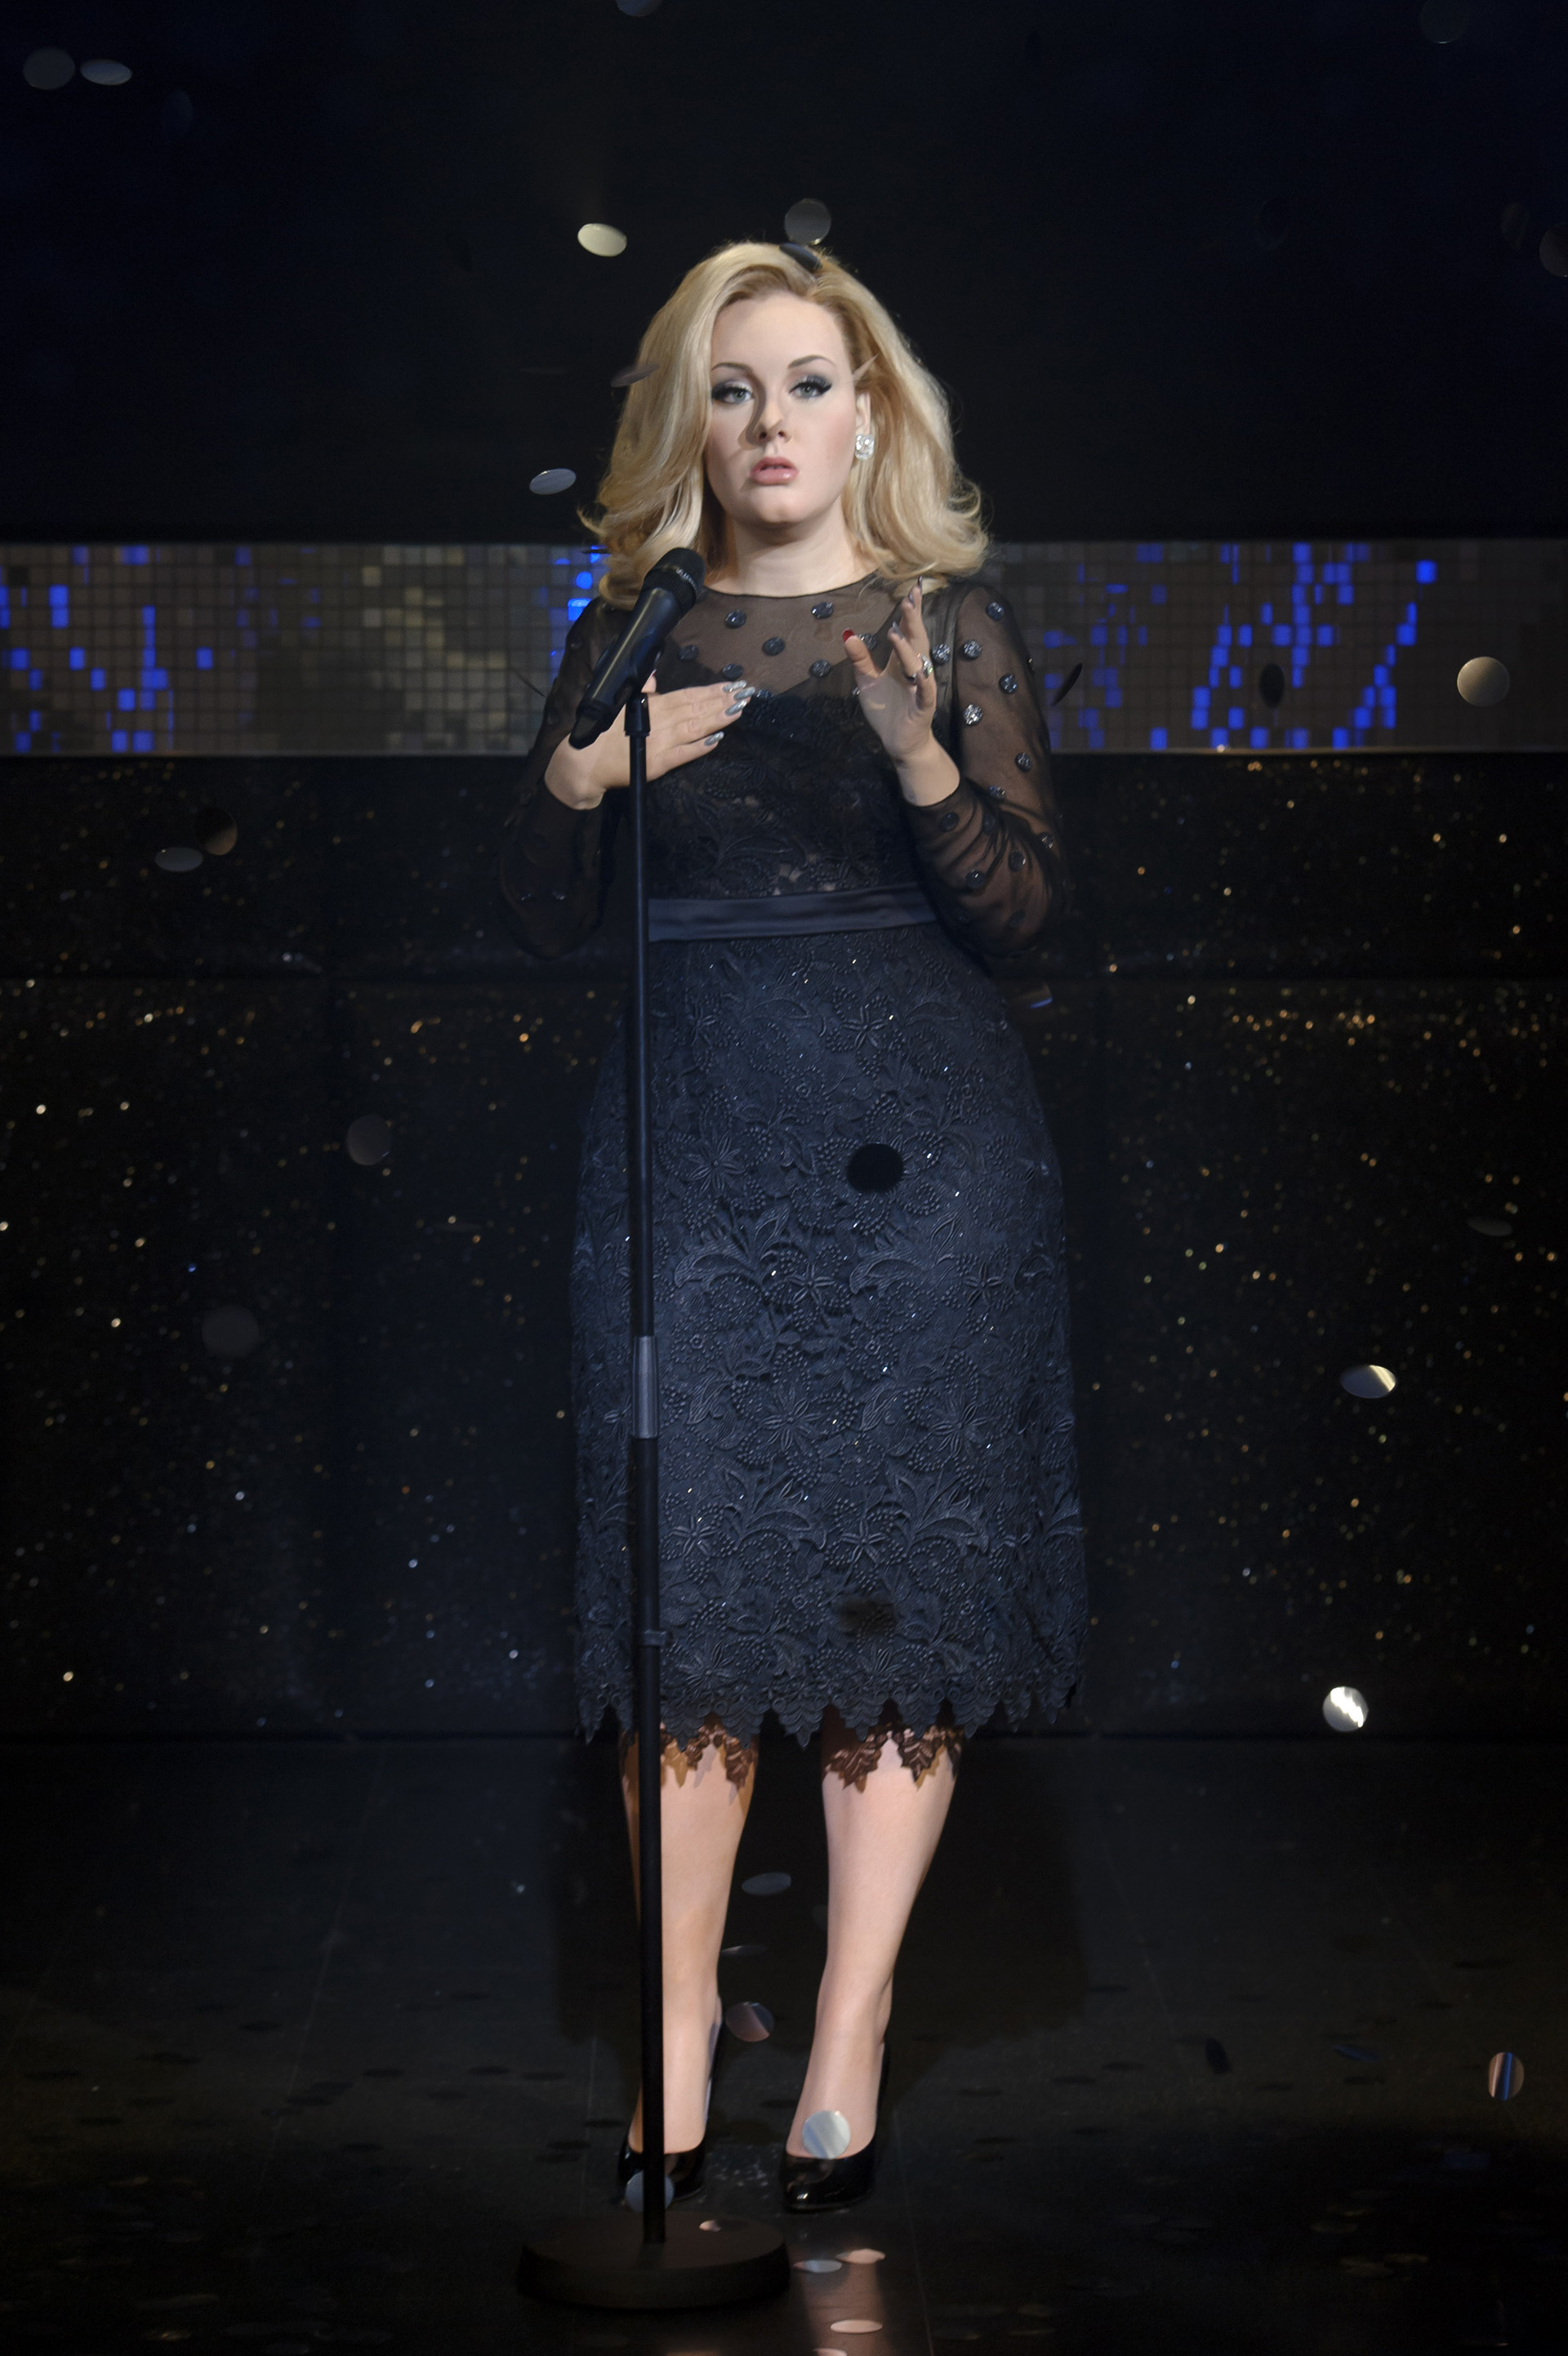 Full body view of Adele figure at Madame Tussauds